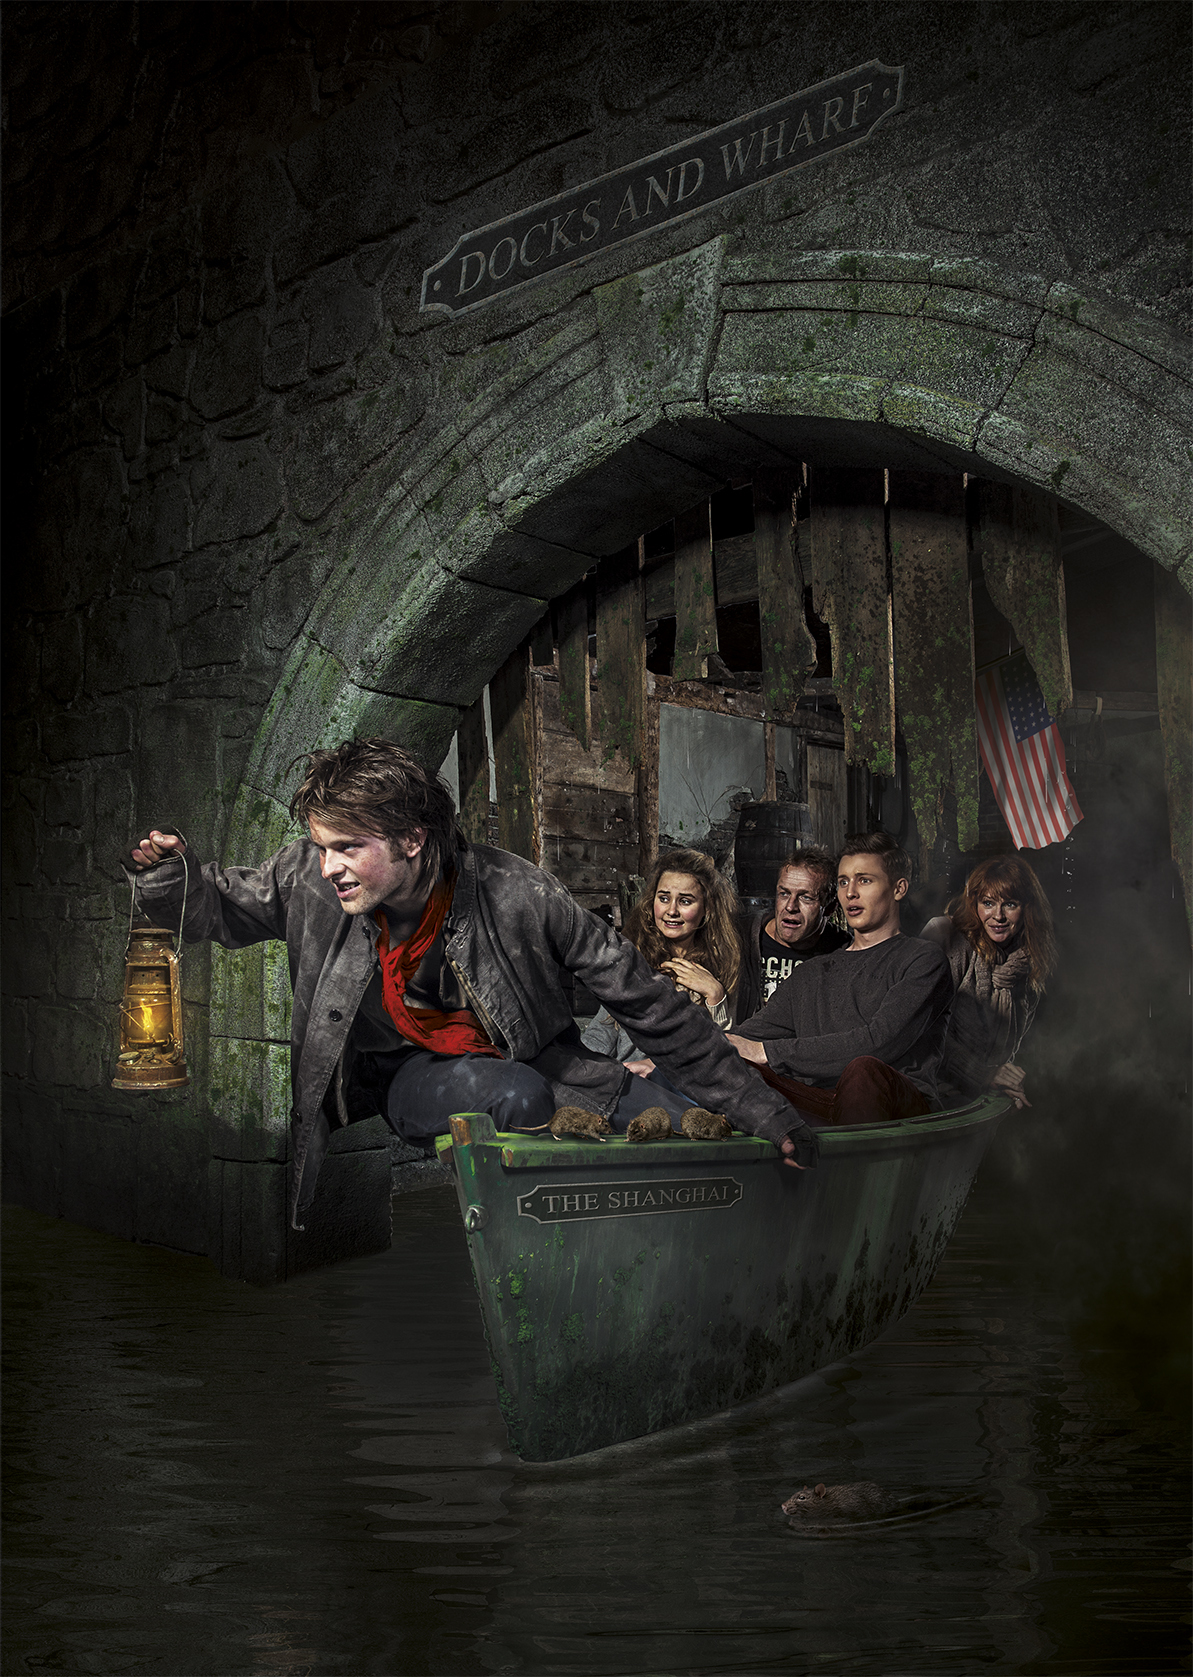 The San Francisco Dungeon, North America's first-ever Dungeon, opens summer of 2014 (Photo: Business Wire)